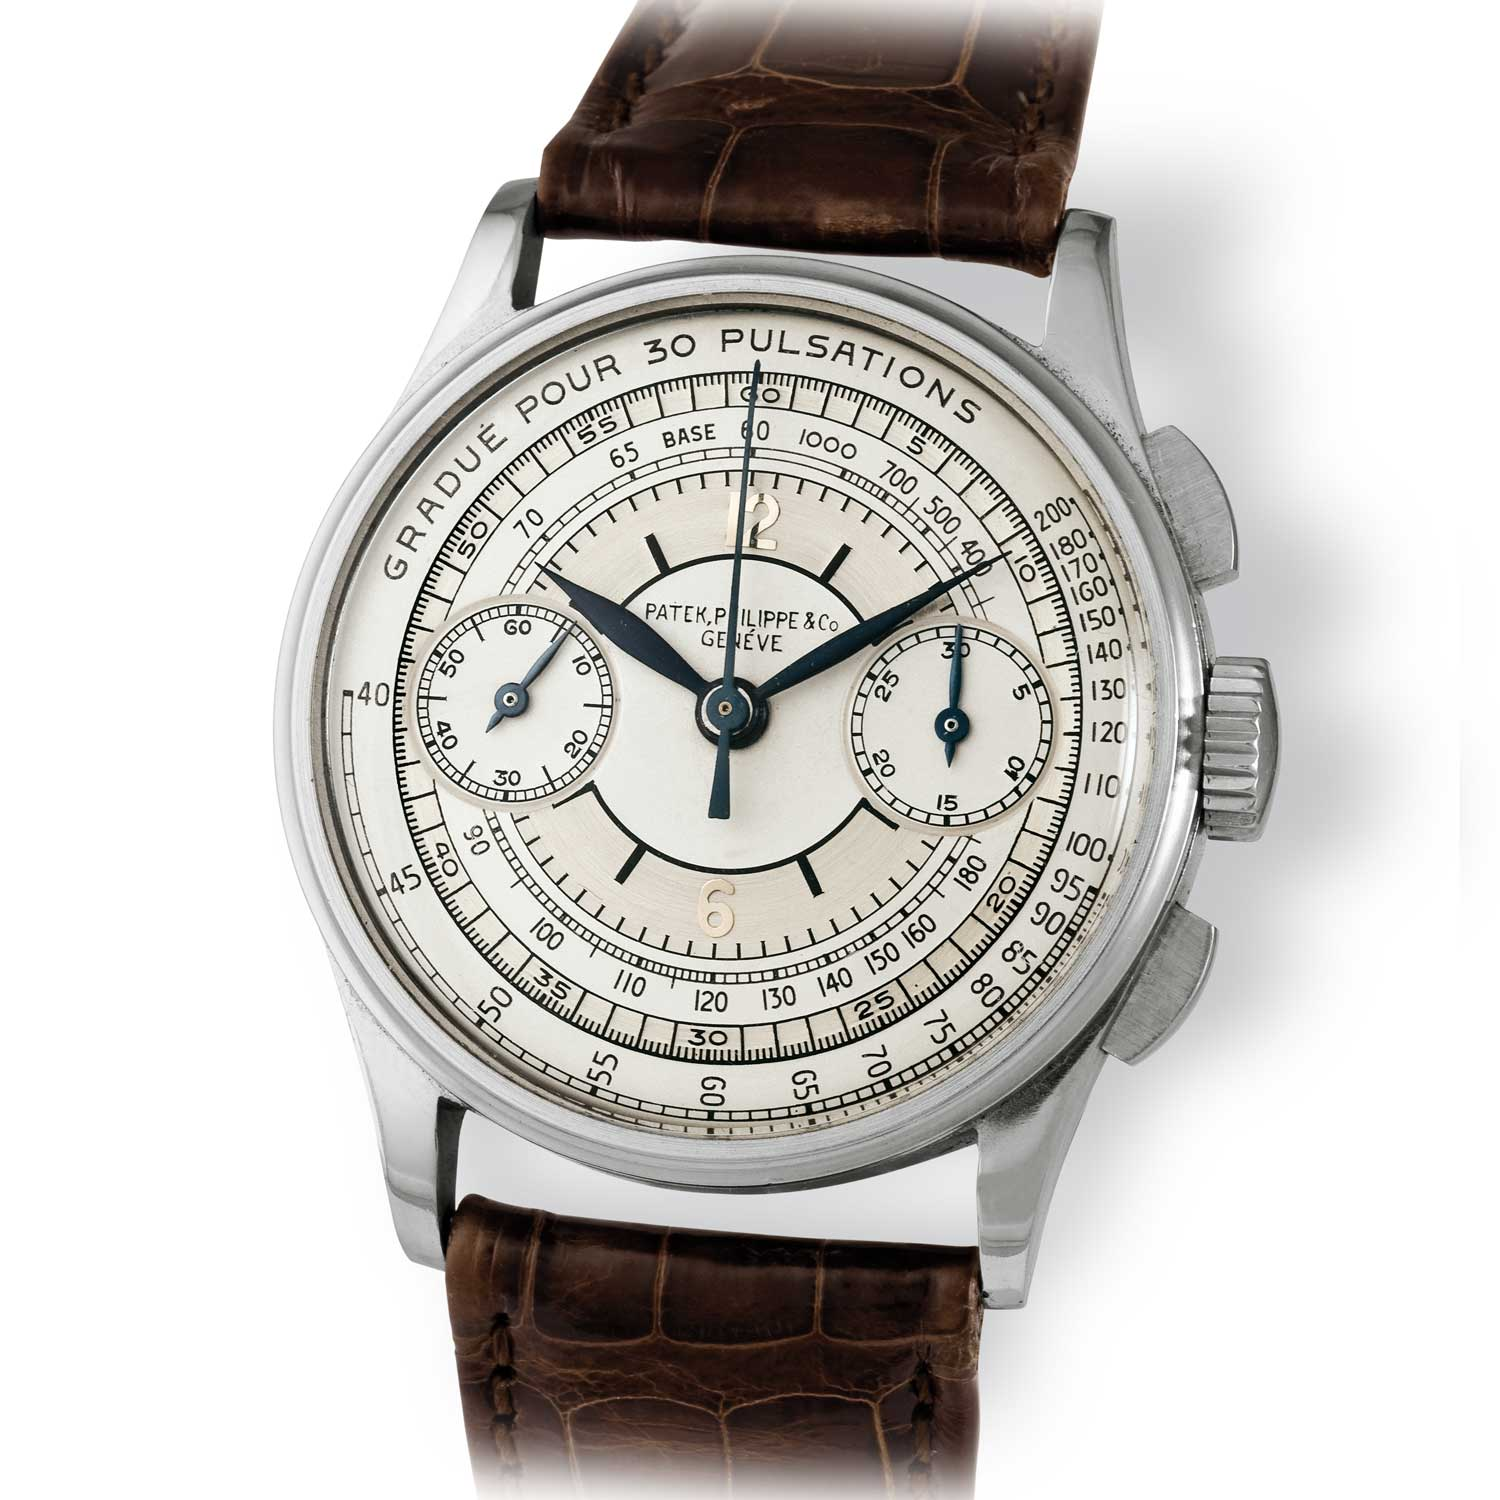 Patek Philippe ref. 130 steel chronograph with sector dial, pulsation scale and tachymeter scales (Image: John Goldberger)